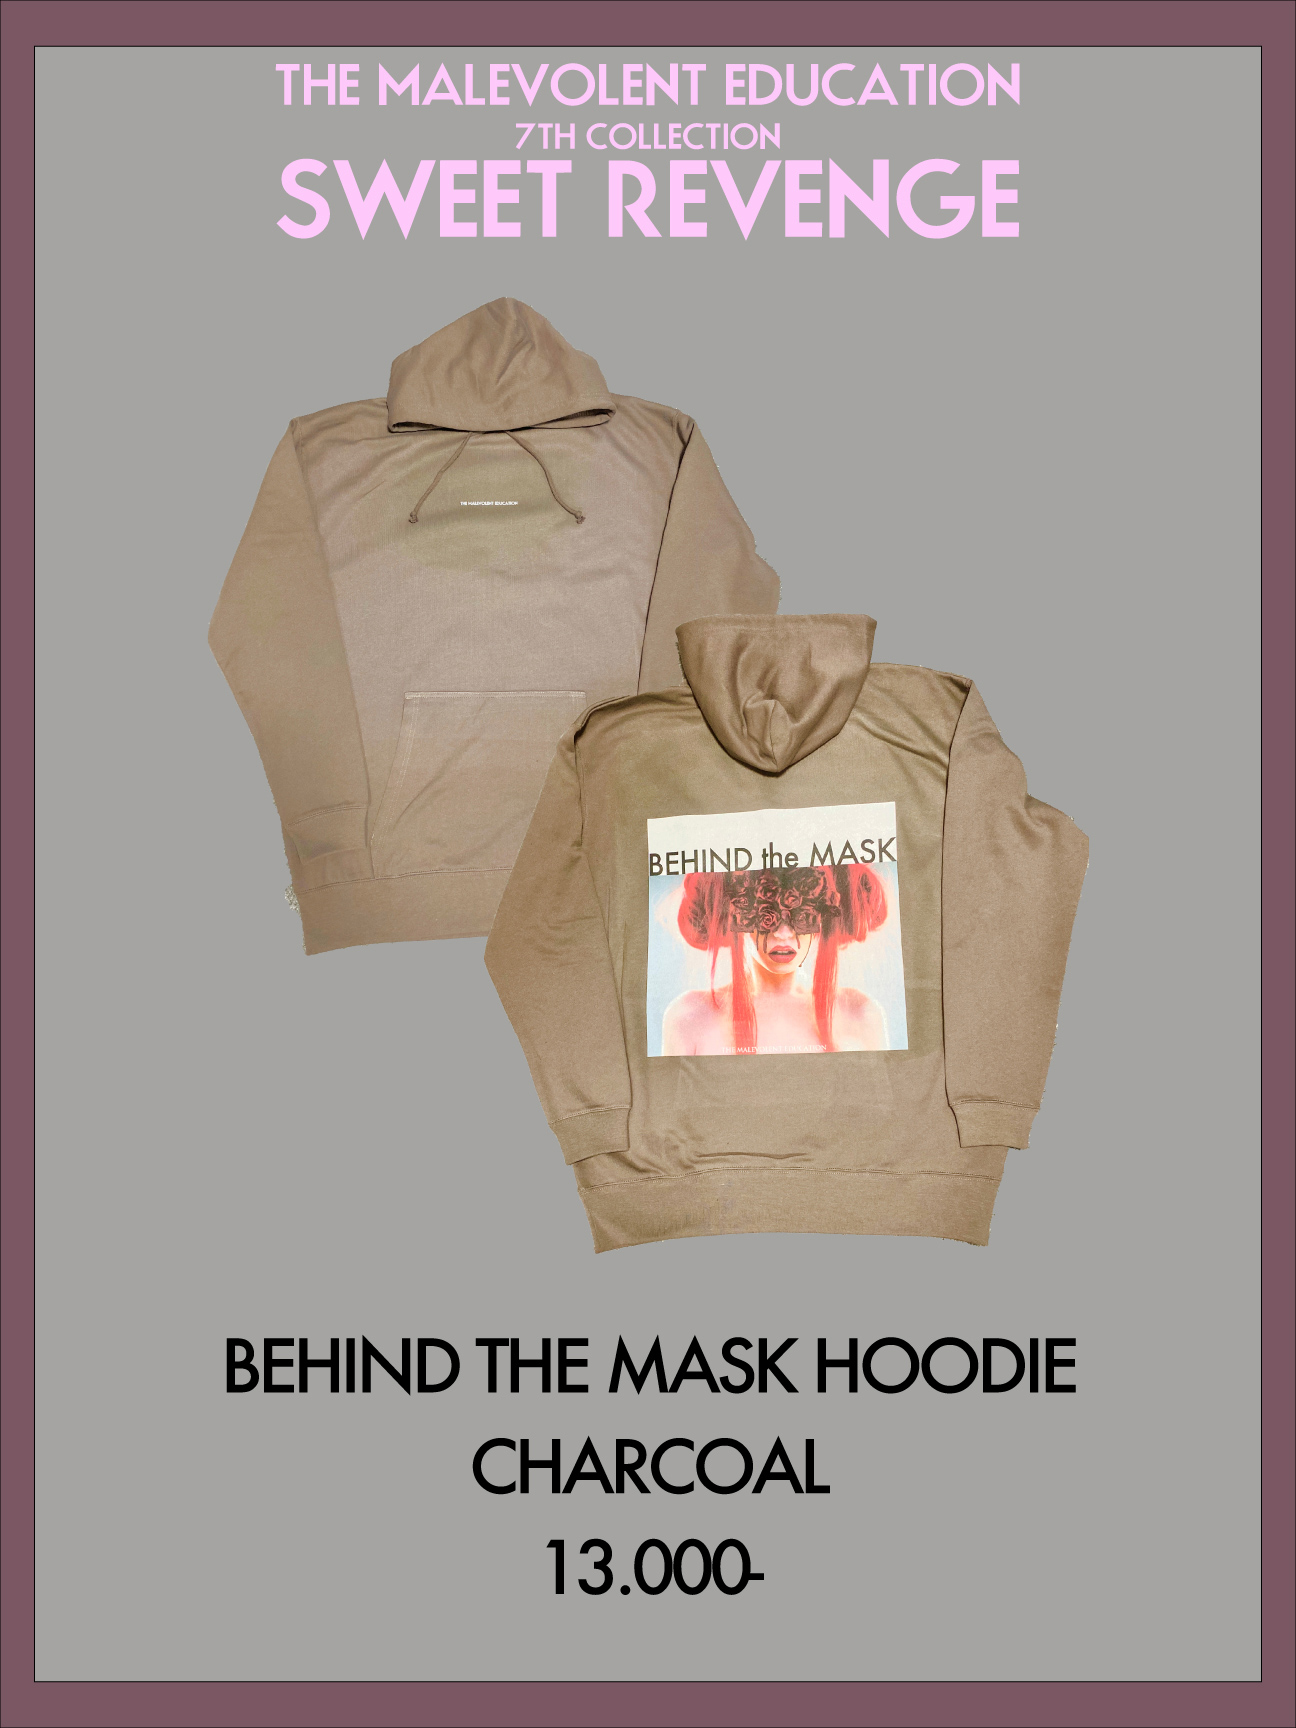 BEHIND THE MASK HOODIE (CHACOAL)